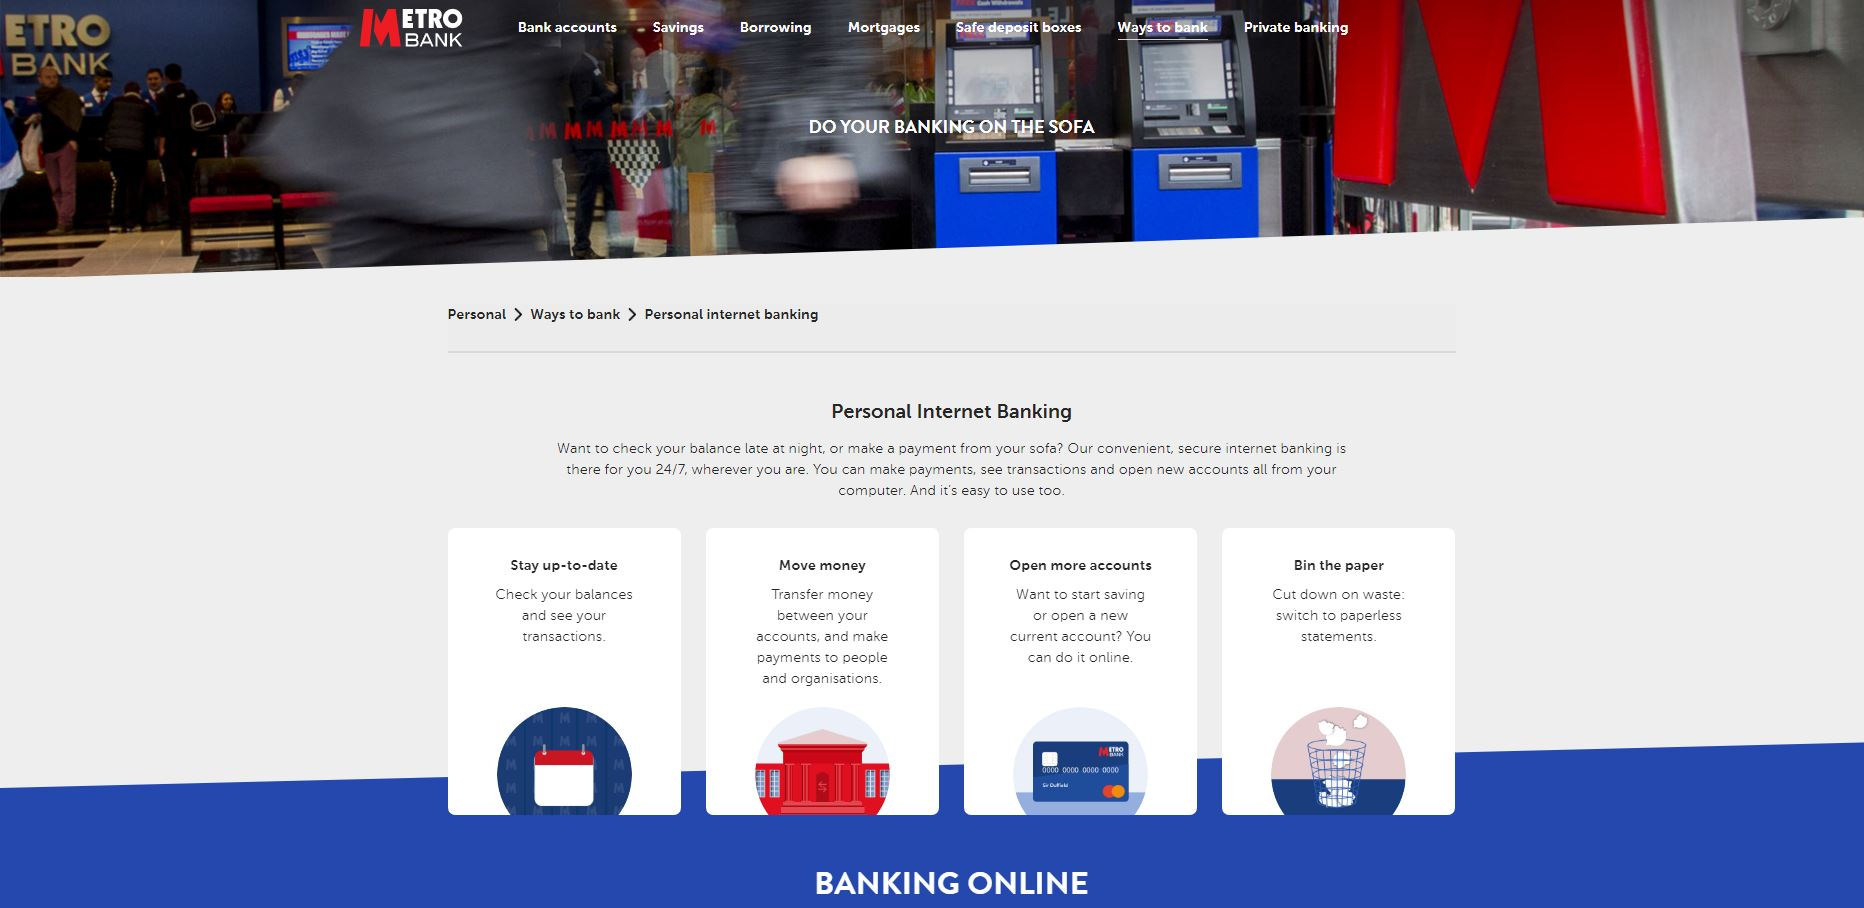 Details about Metro Bank's mobile banking